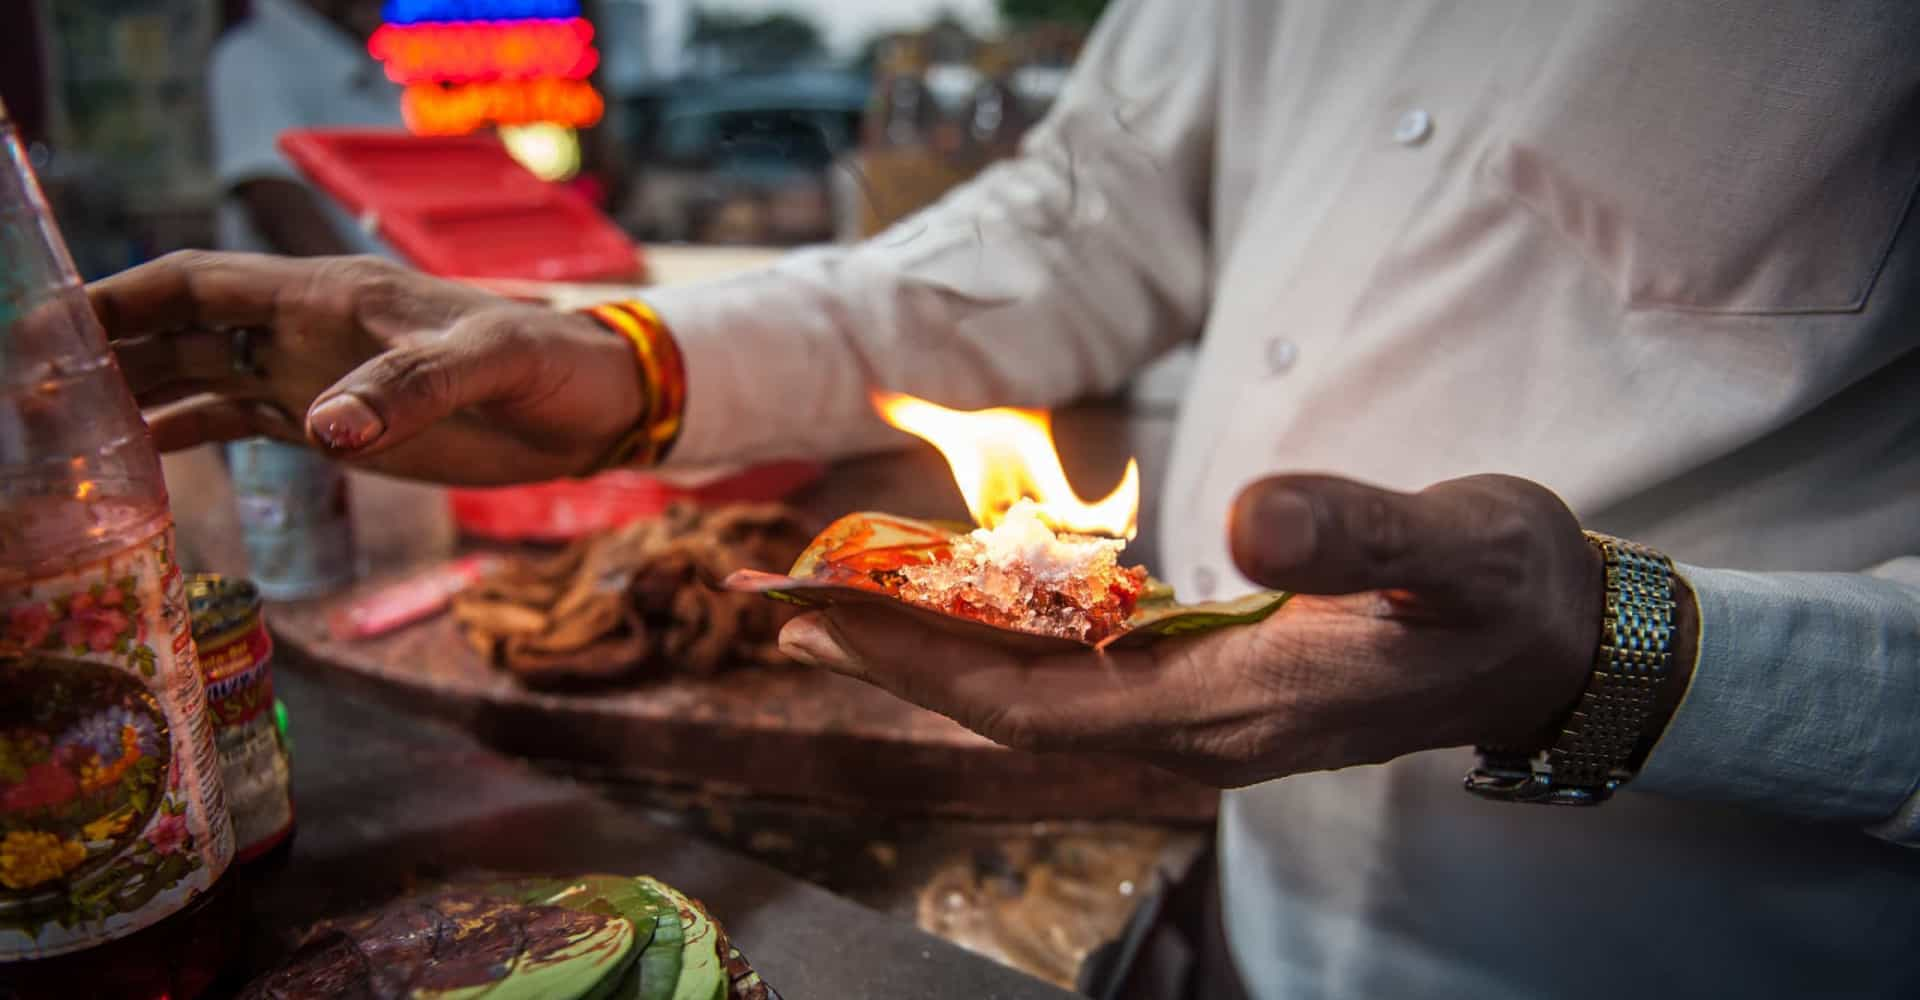 Must-try street food for travelers